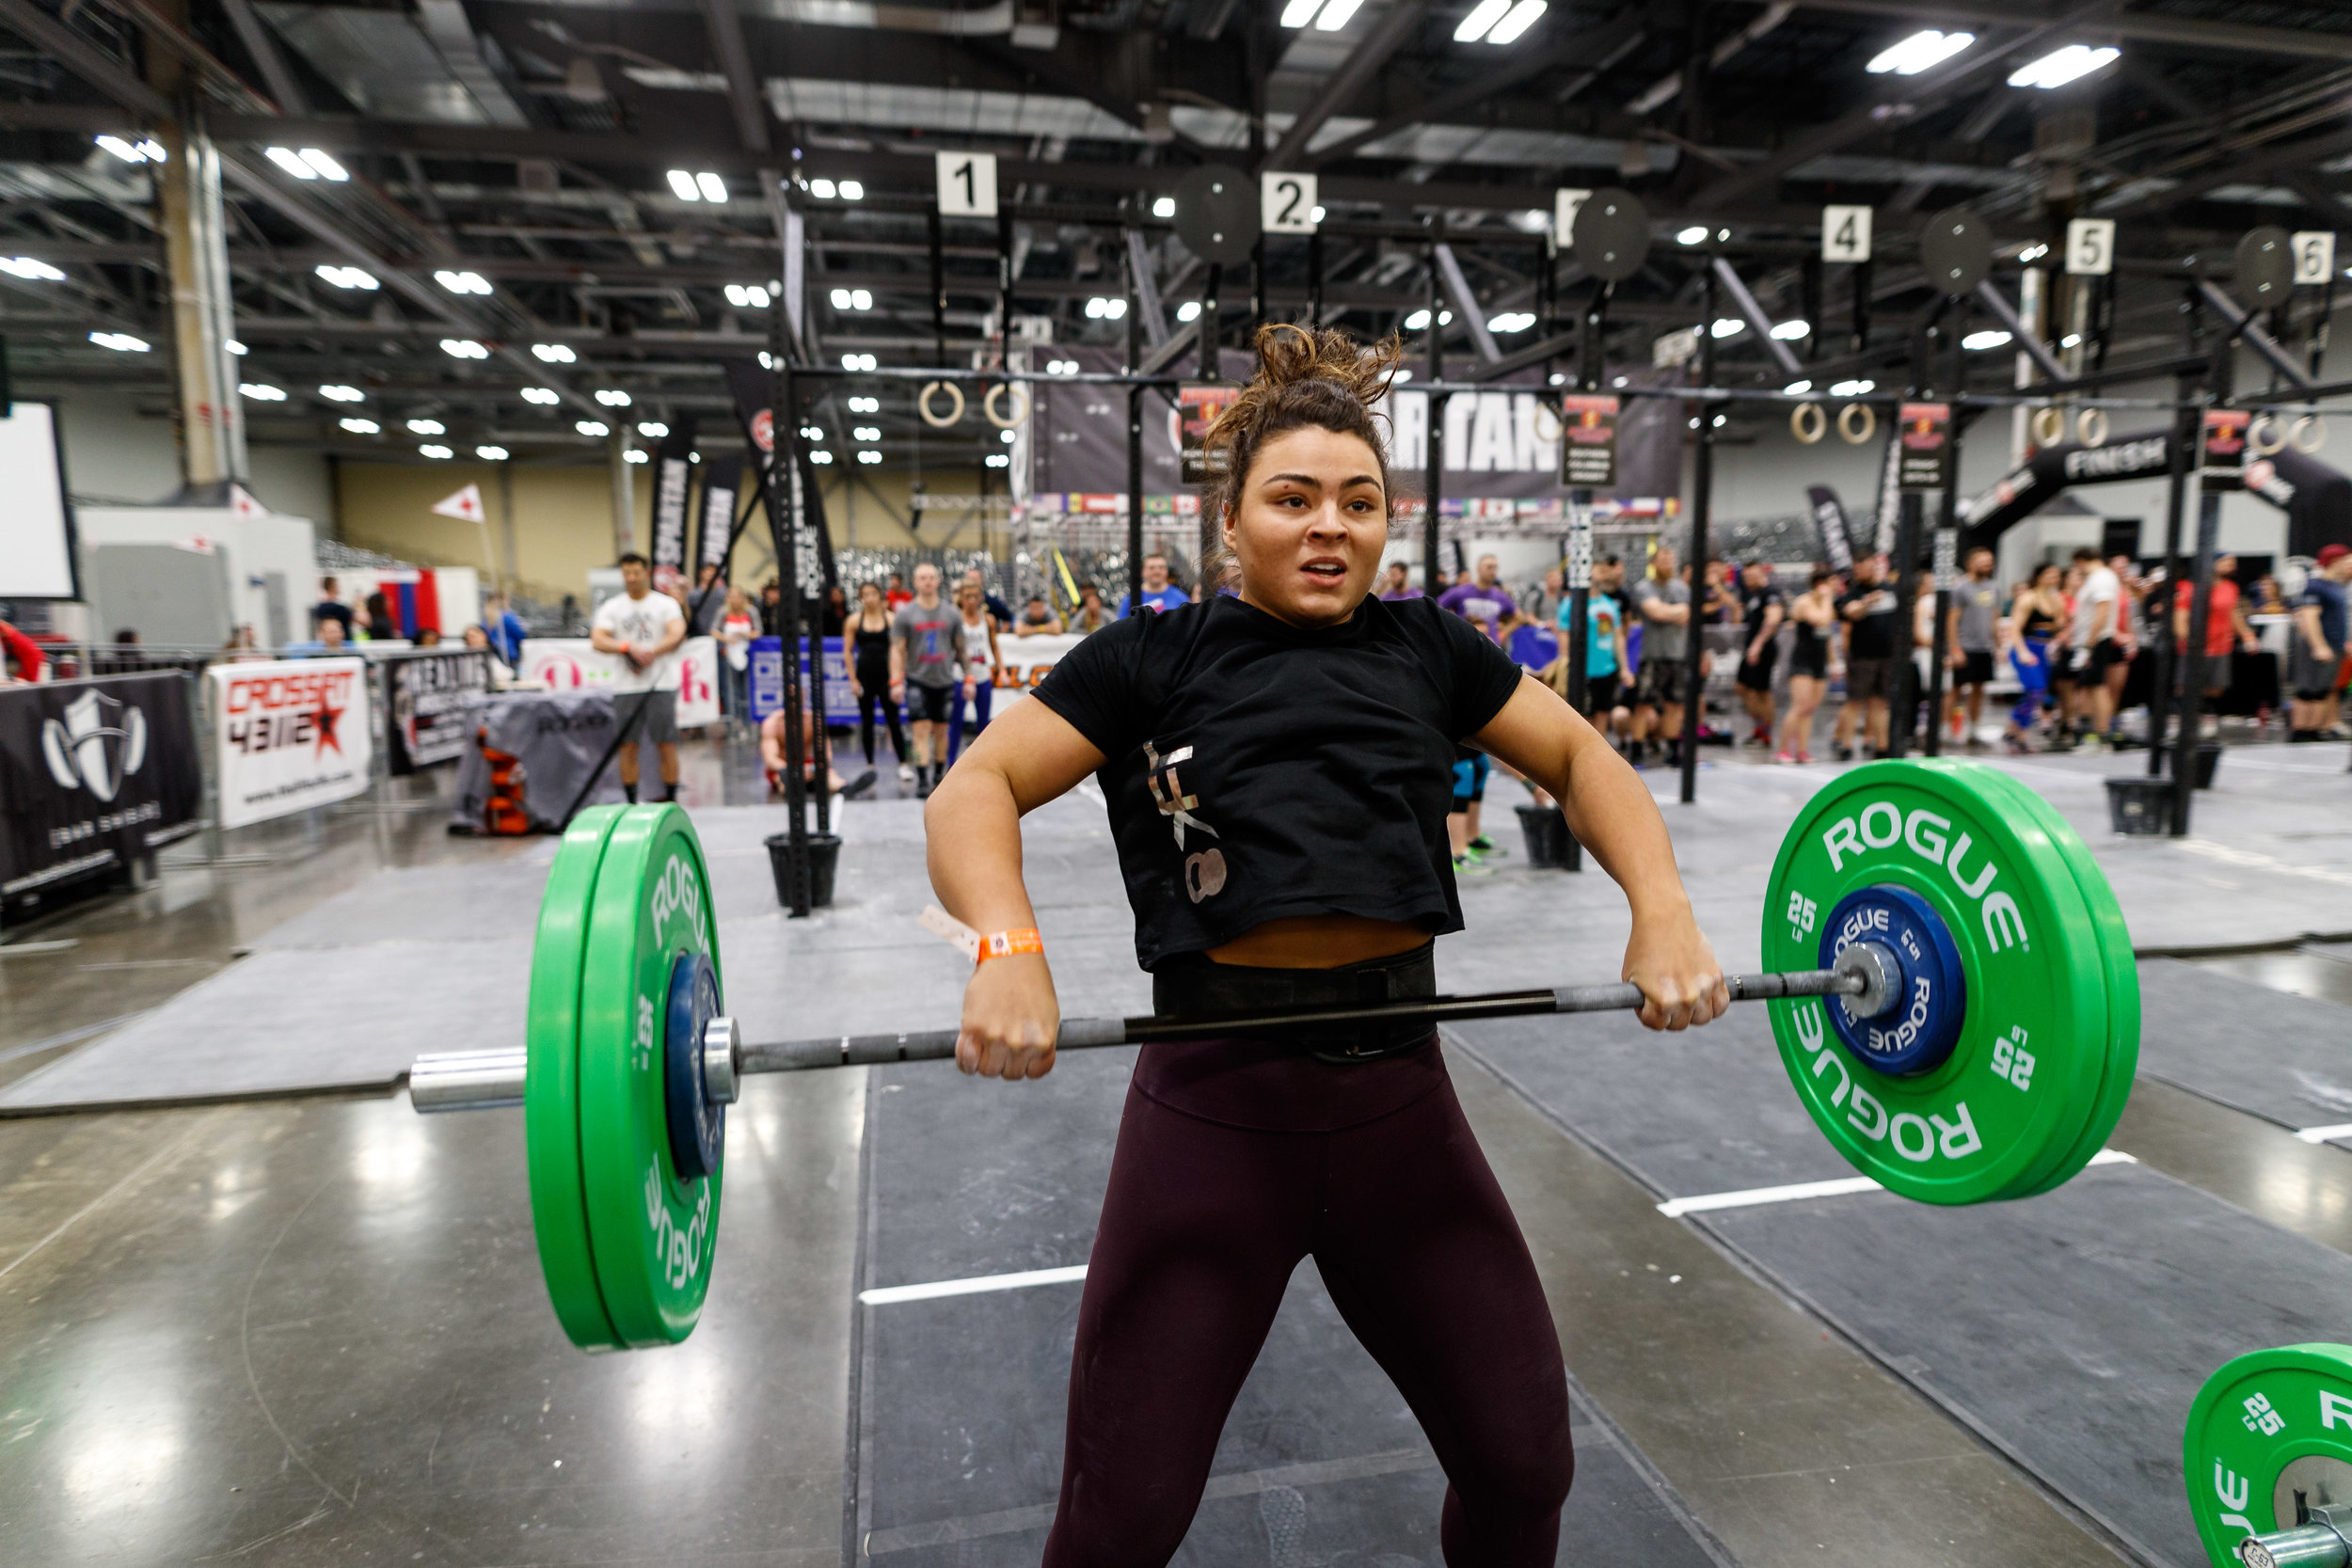 Emily Nussbaum - finishing 155th in the Central East Region a huge improvement from 388th last year. Accomplishing advanced gymnastics like bar muscle ups, ring muscle ups, chest to bar pull-ups and showcasing her strength on the barbell with an impressive 222lb Clean in 18.2a!